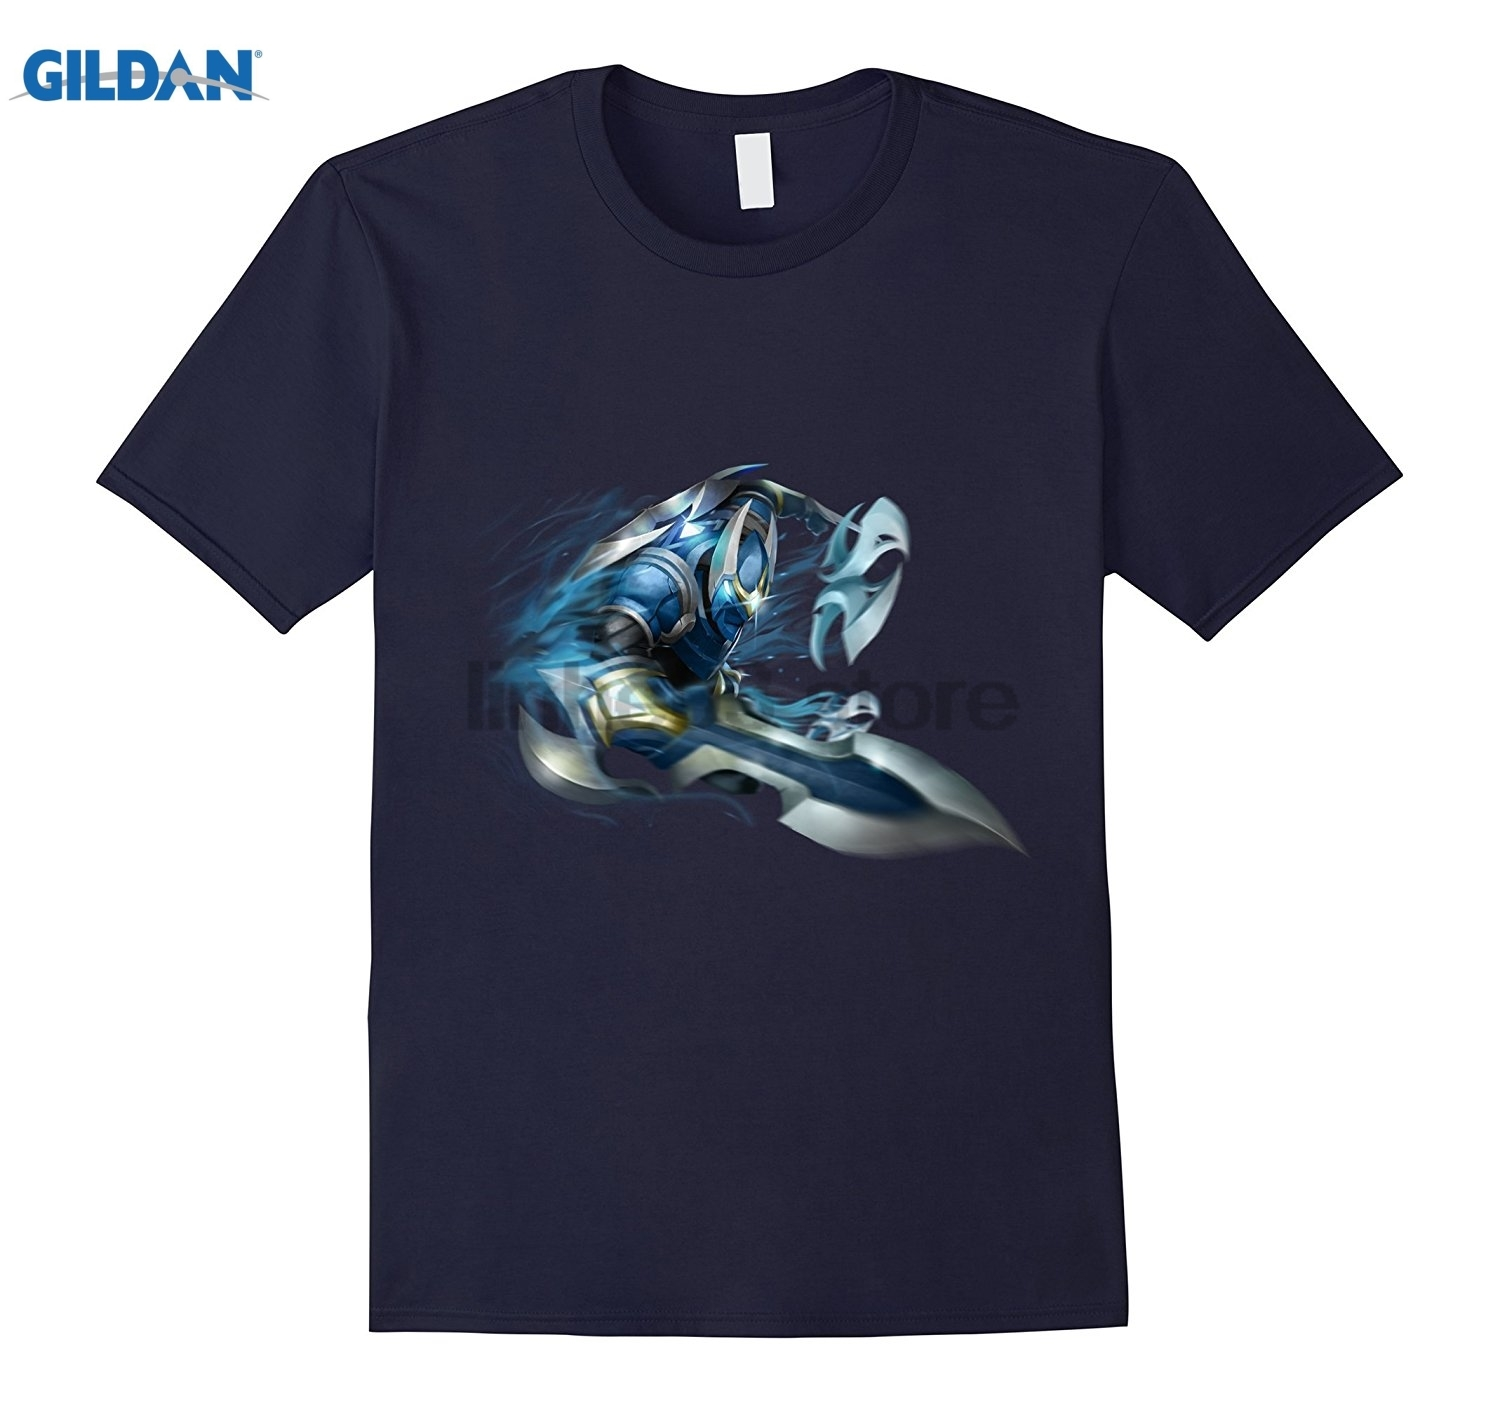 GILDAN Zed League Championship Shirt Dress female T-shirt Mothers Day Ms. T-shirt ...